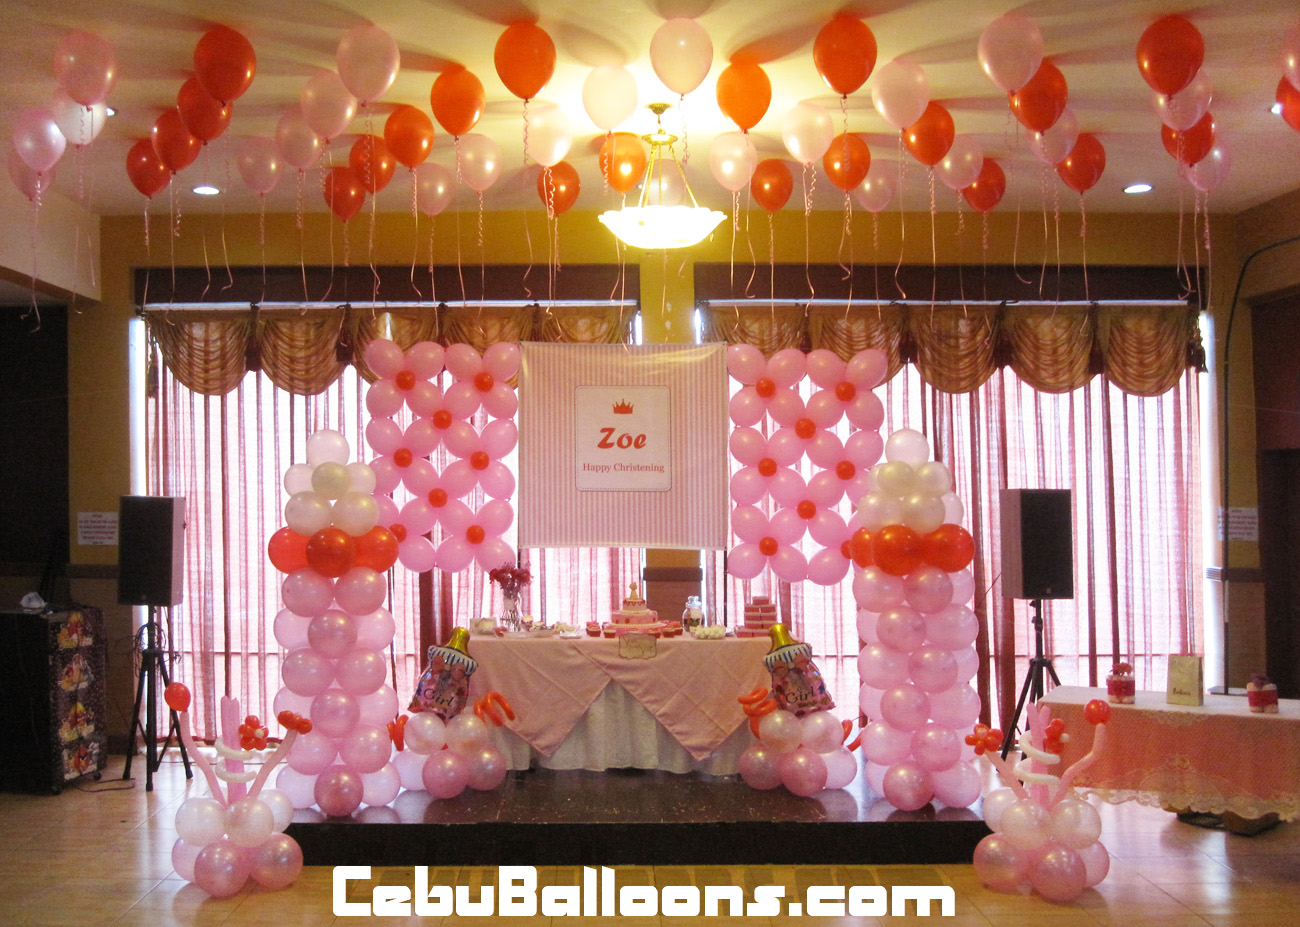 Christening balloons and decorations party favors ideas for Balloon decoration images party